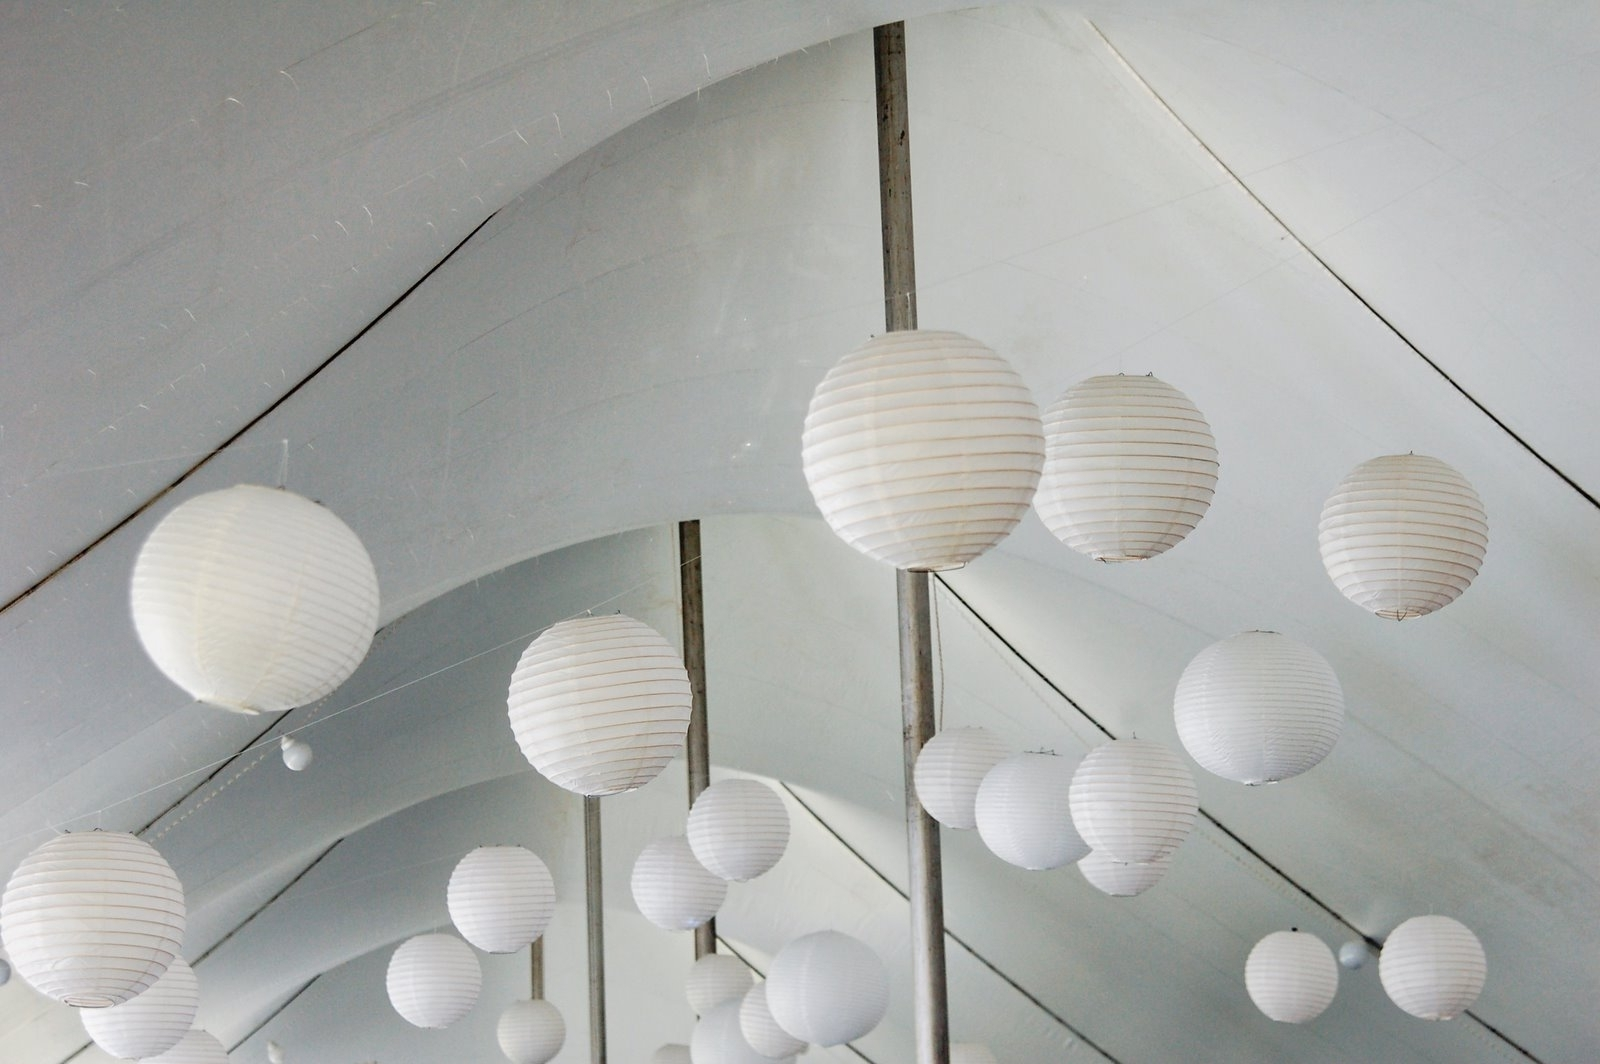 Newest Outdoor Hanging Lanterns For Wedding In Tents, And Lanterns, And Layouts, Oh My (View 14 of 20)